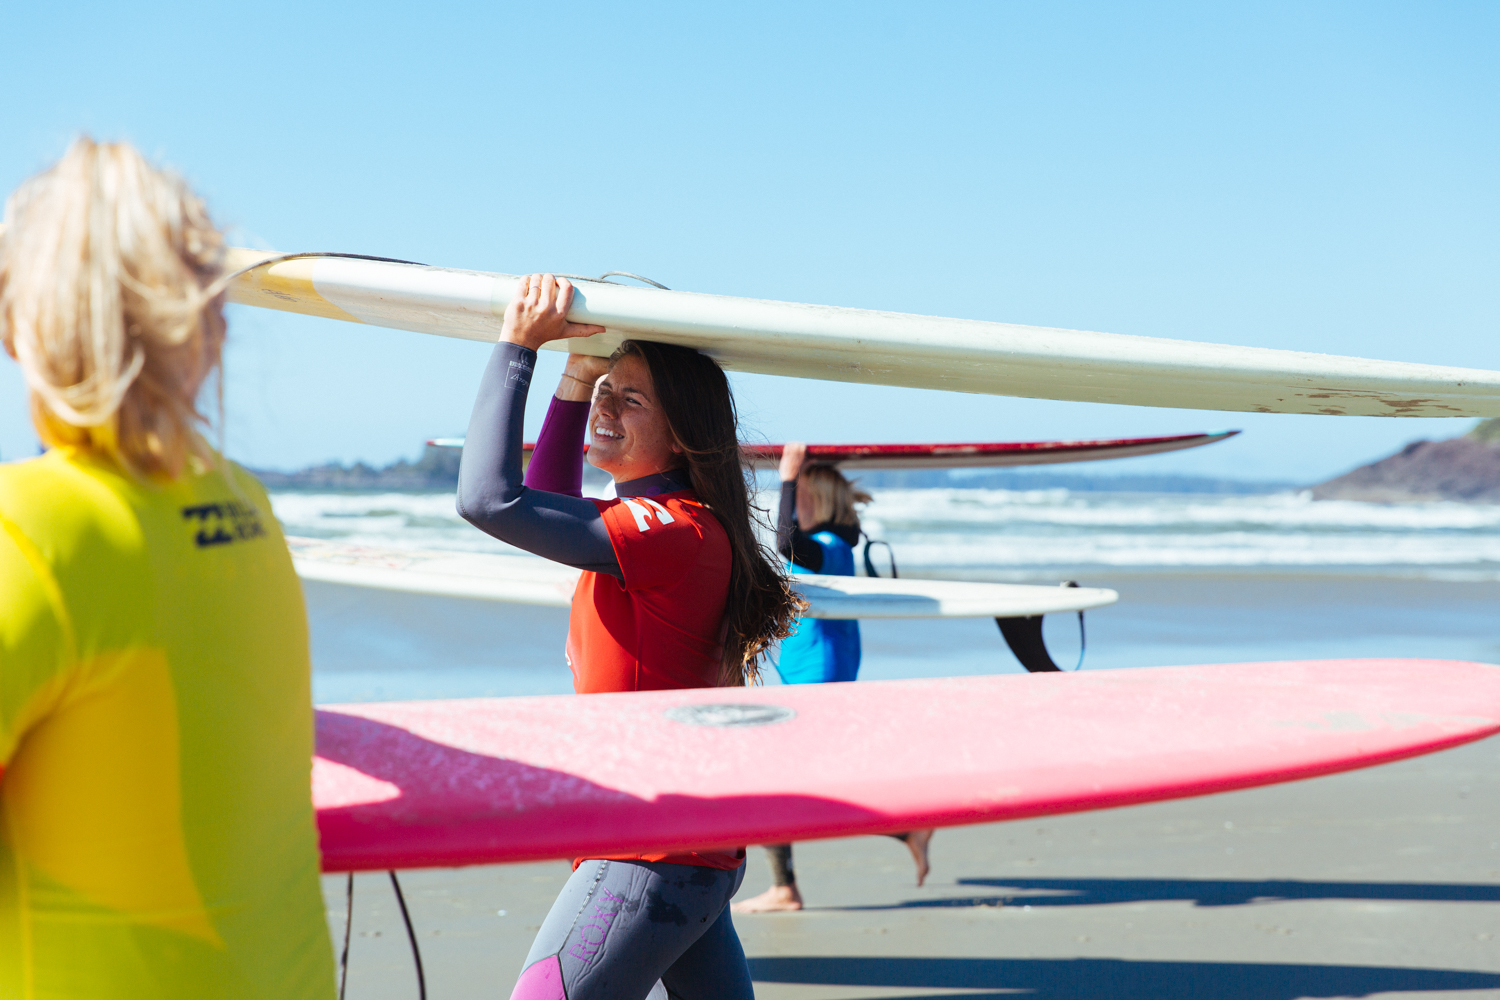 tofino is a place Women's Surf Film Festival